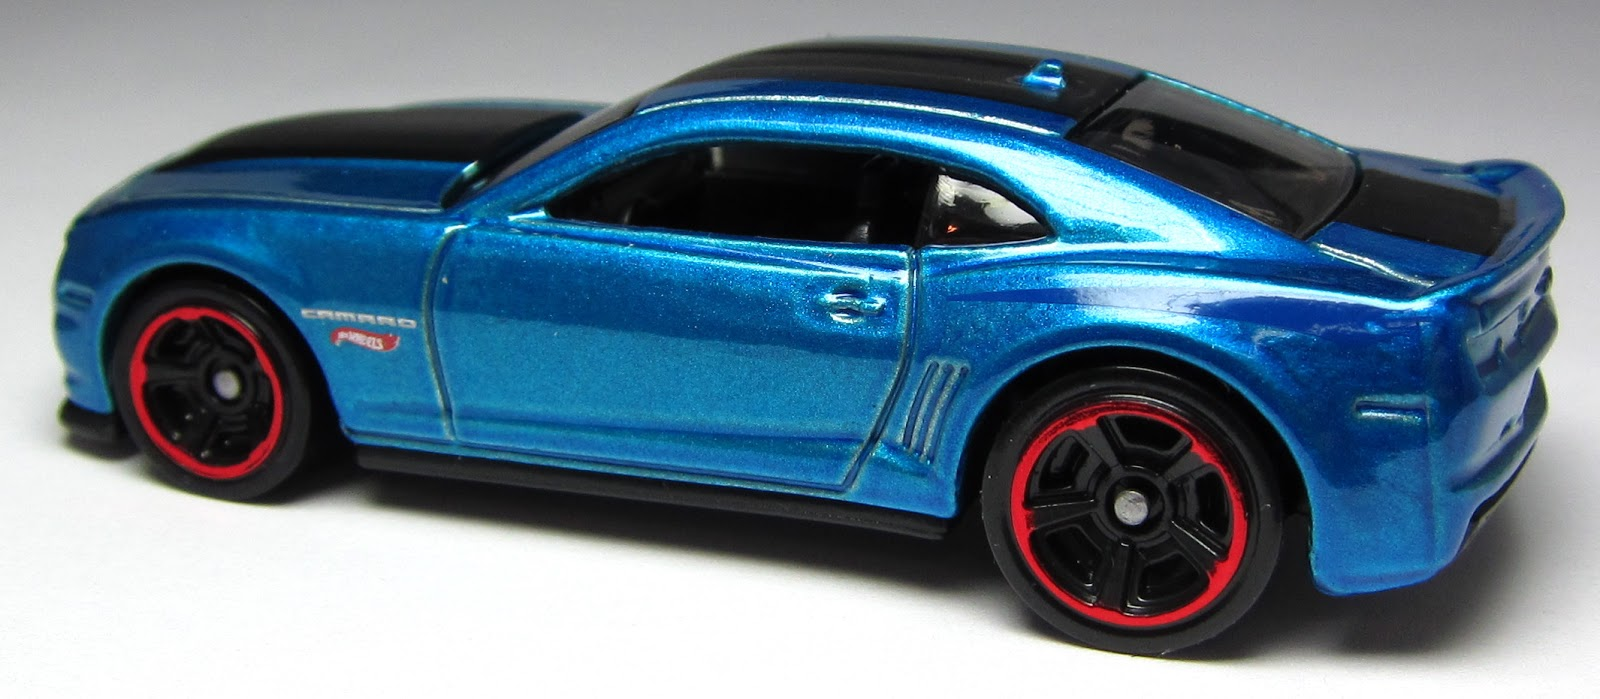 Chevy Camaro Hot Wheels Edition